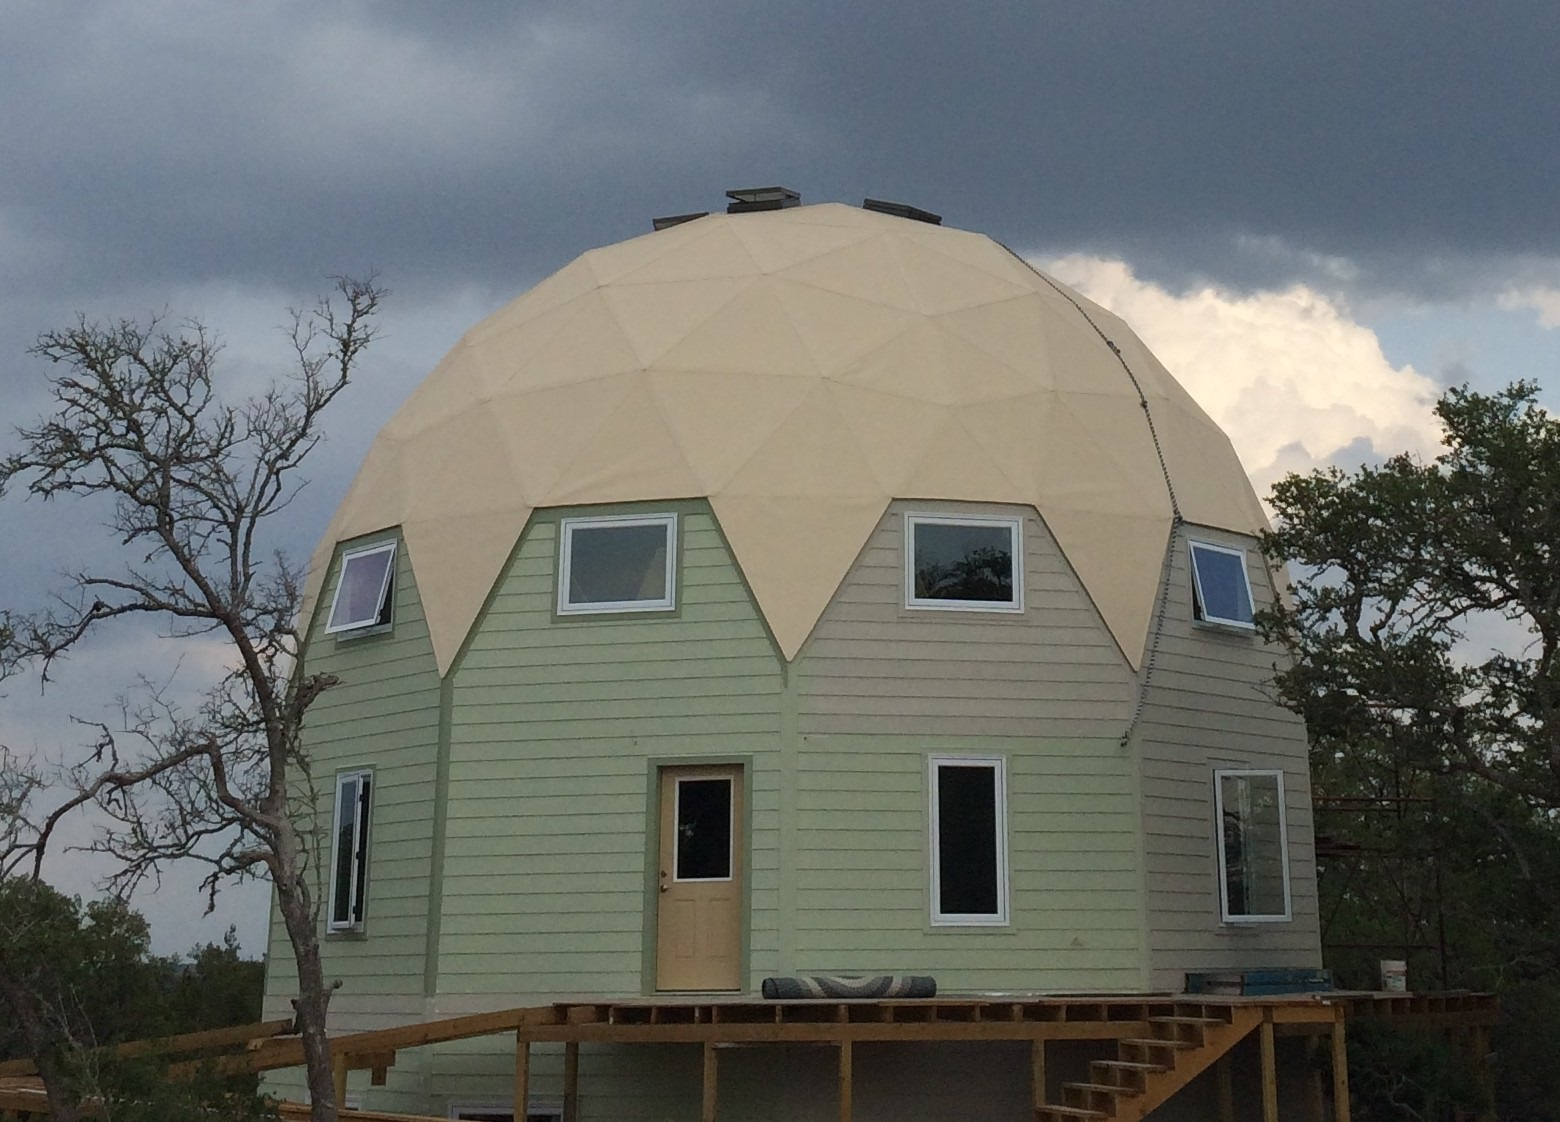 New Mexico Art Studio Dome Built With Econodome Kits